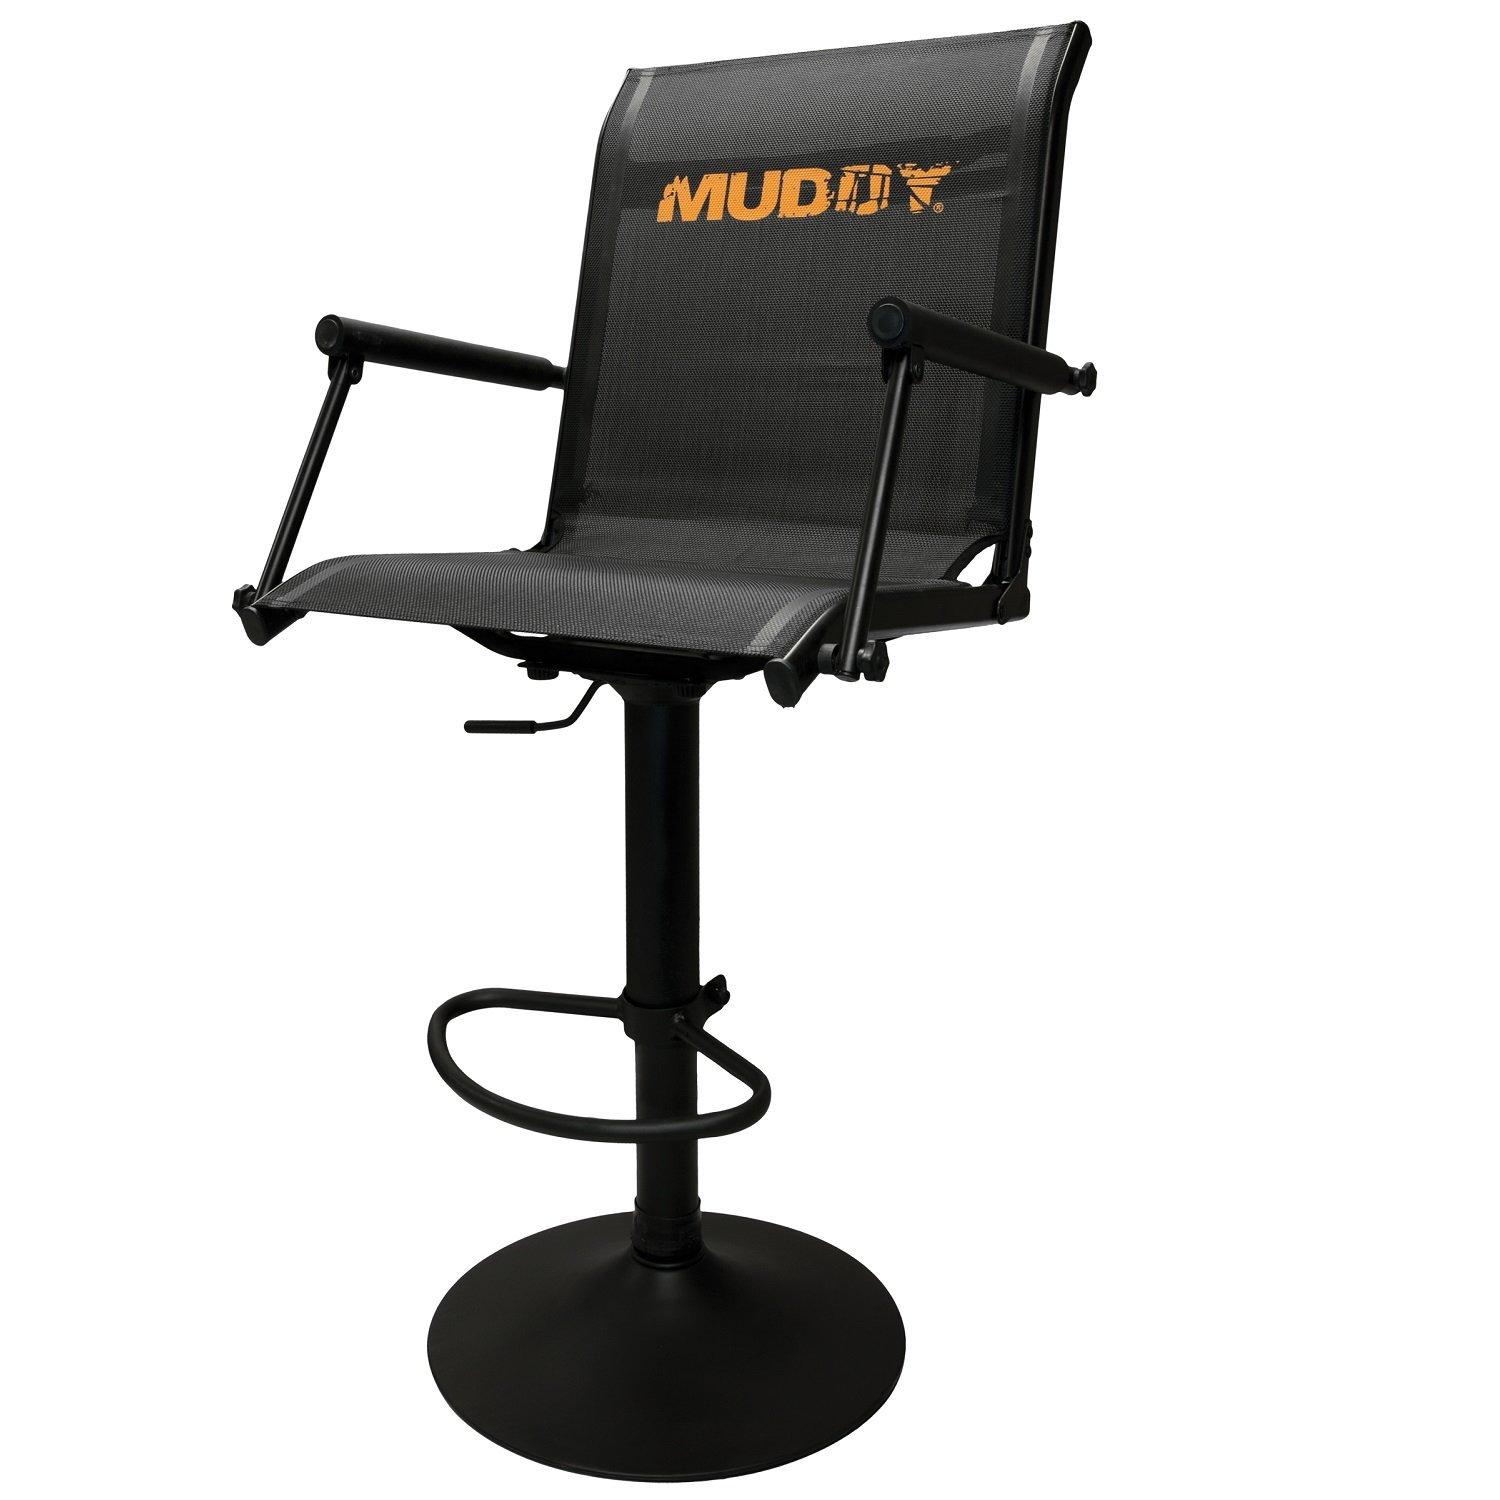 Muddy Swivel-Ease Xtreme Chair